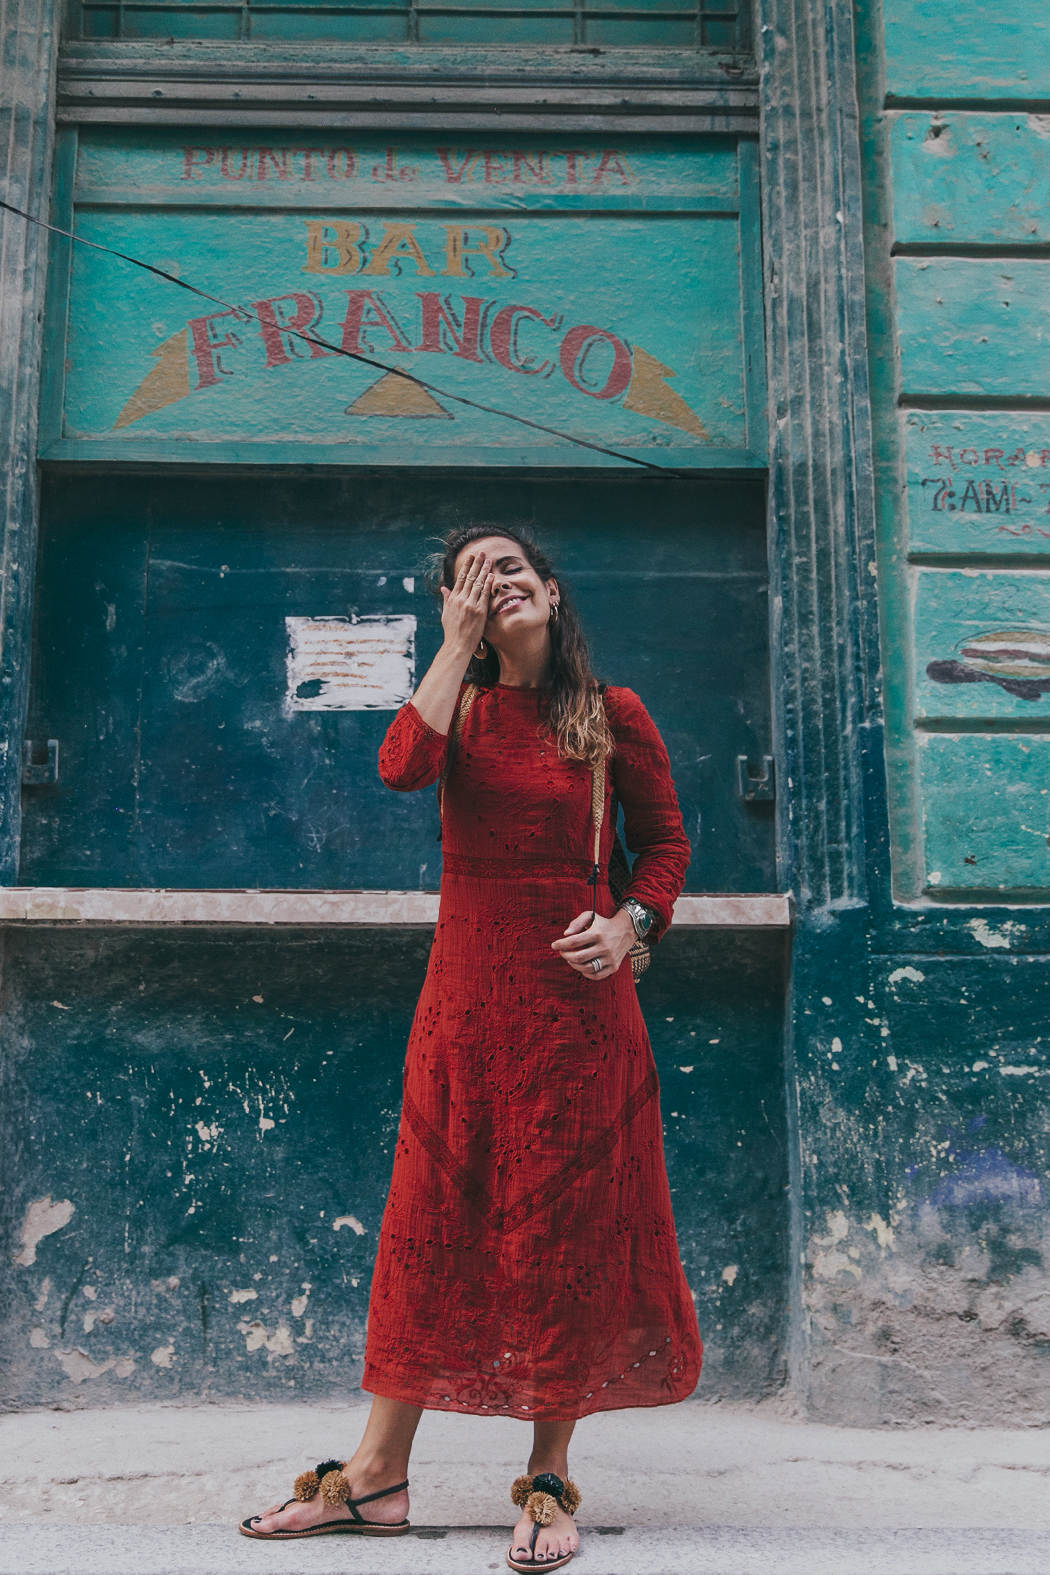 Cuba-La_Habana_Centro-Red_Dress-PomPom_Sandals-Backpack-Sreetstyle-Half_Knot_Hairstyle-Outfit-15